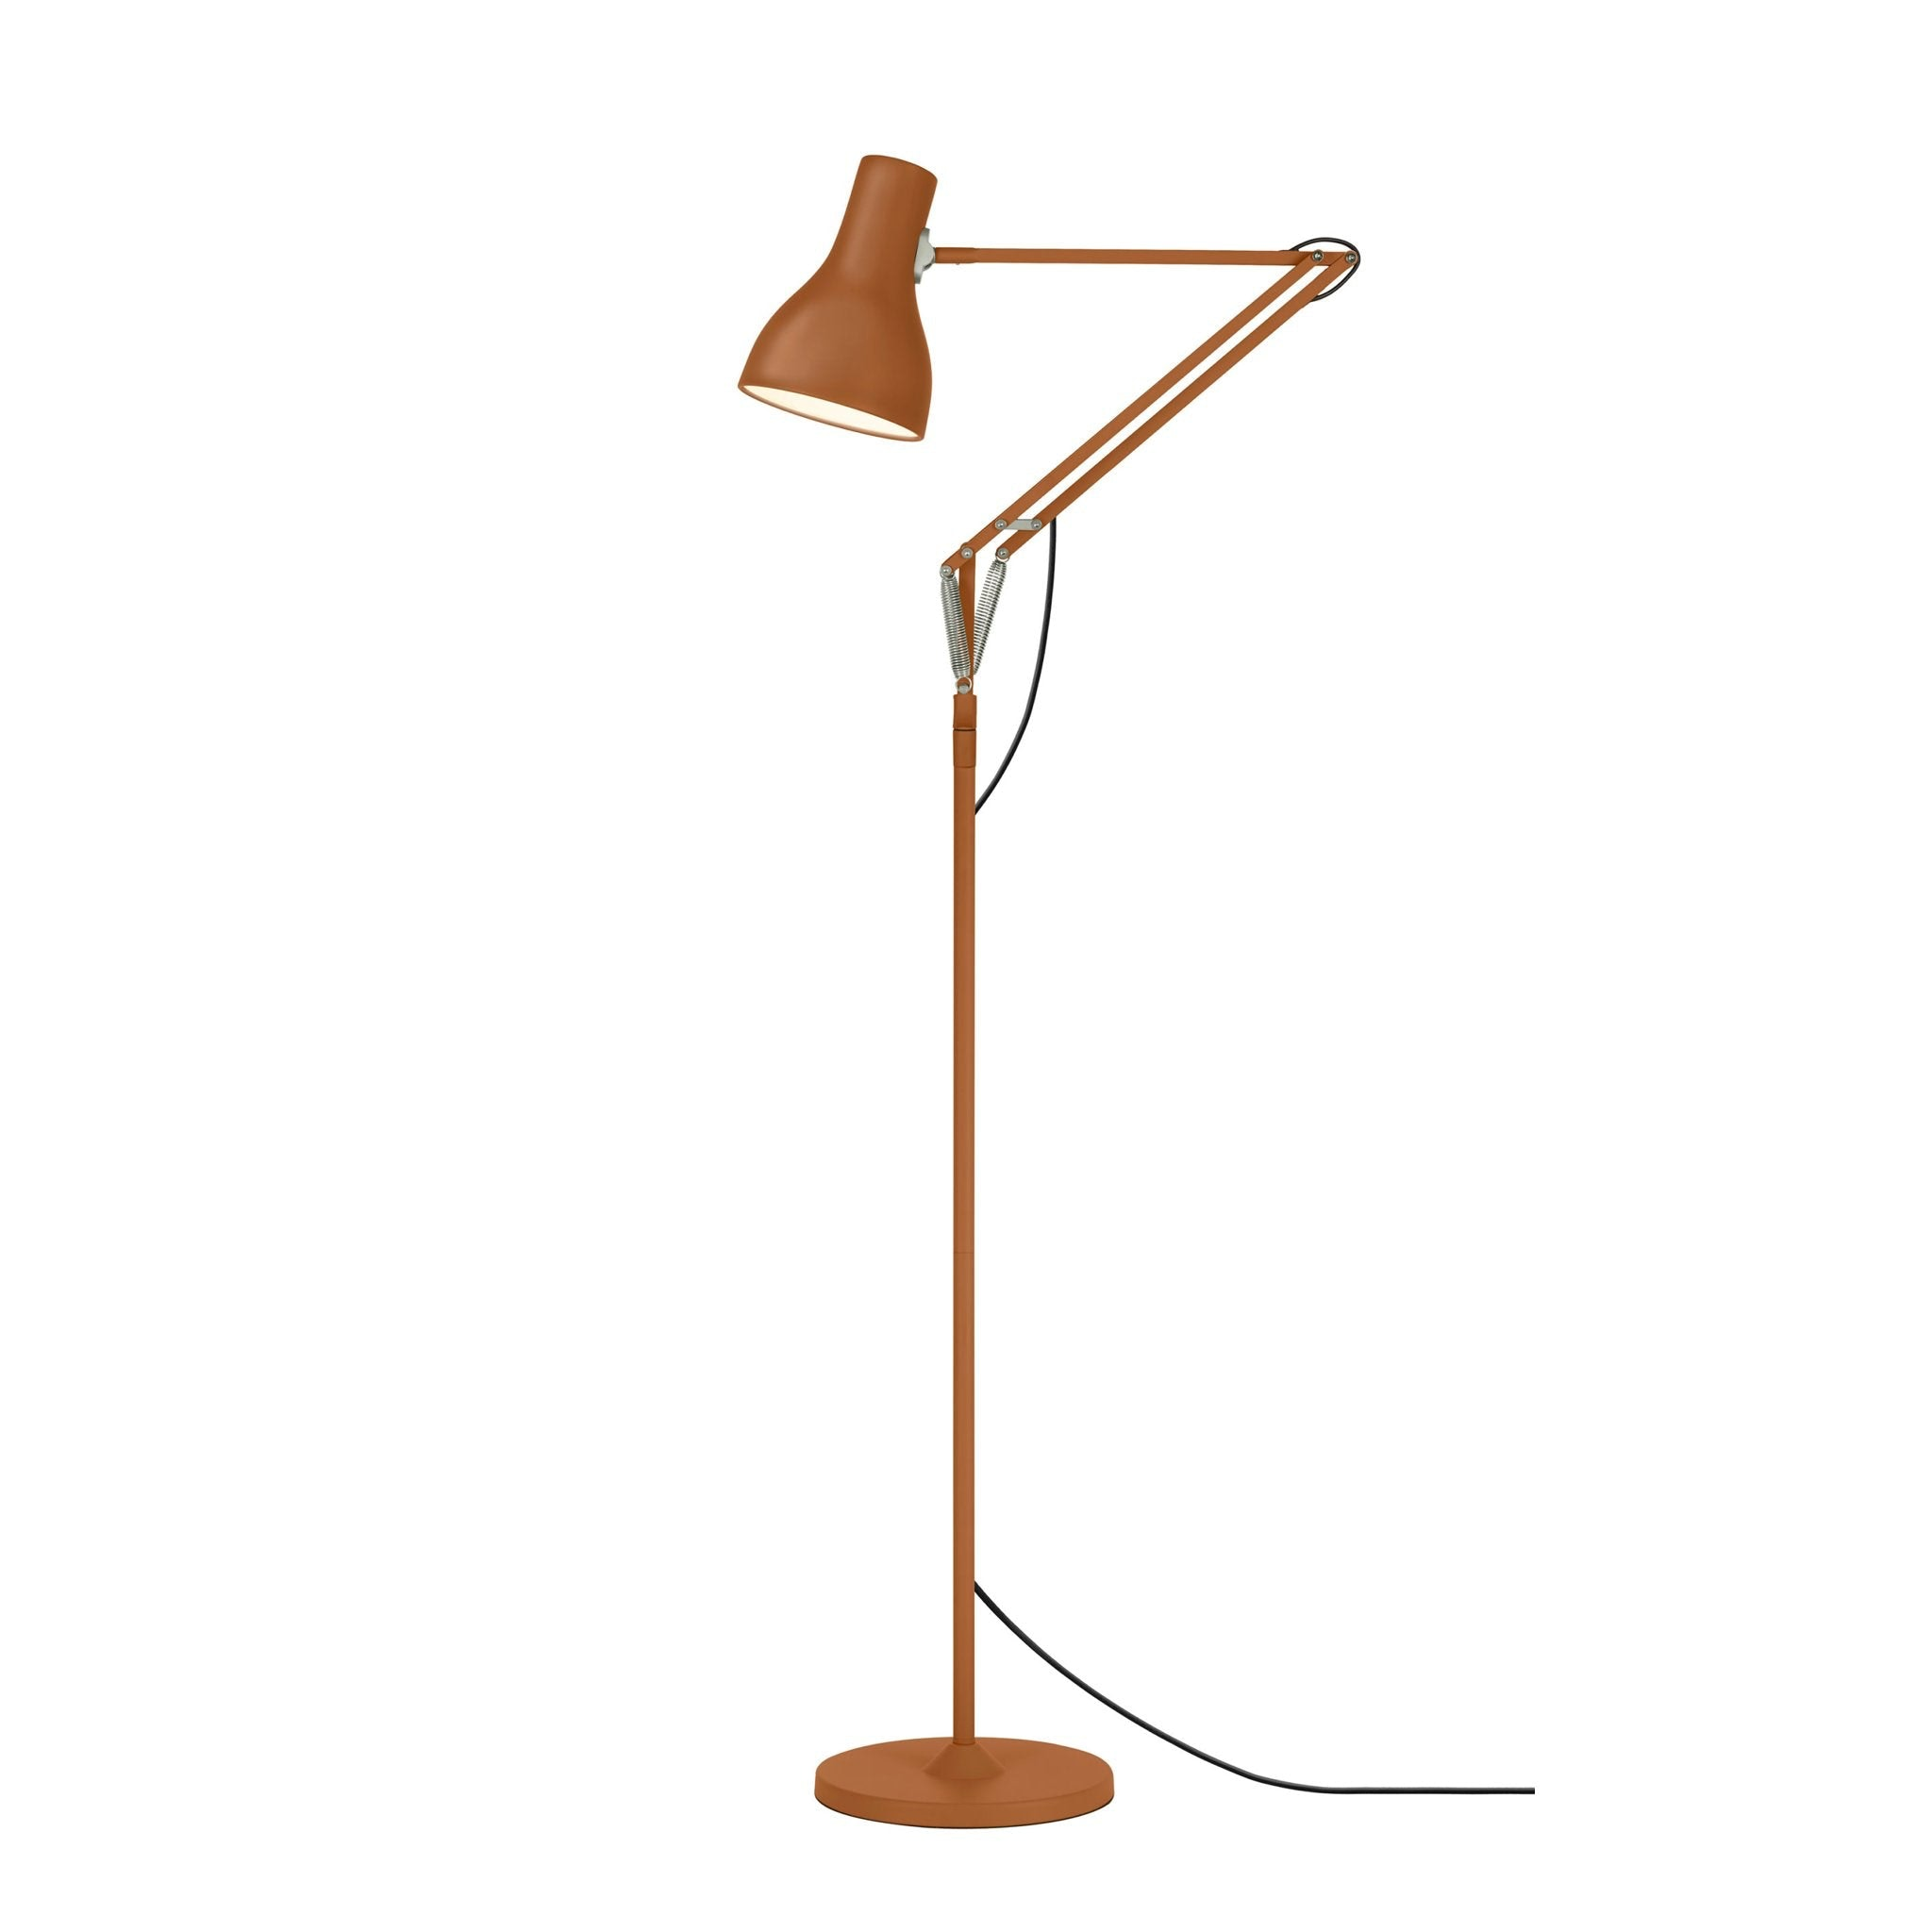 Type 75 Floor Lamp Sienna Edition by Anglepoise